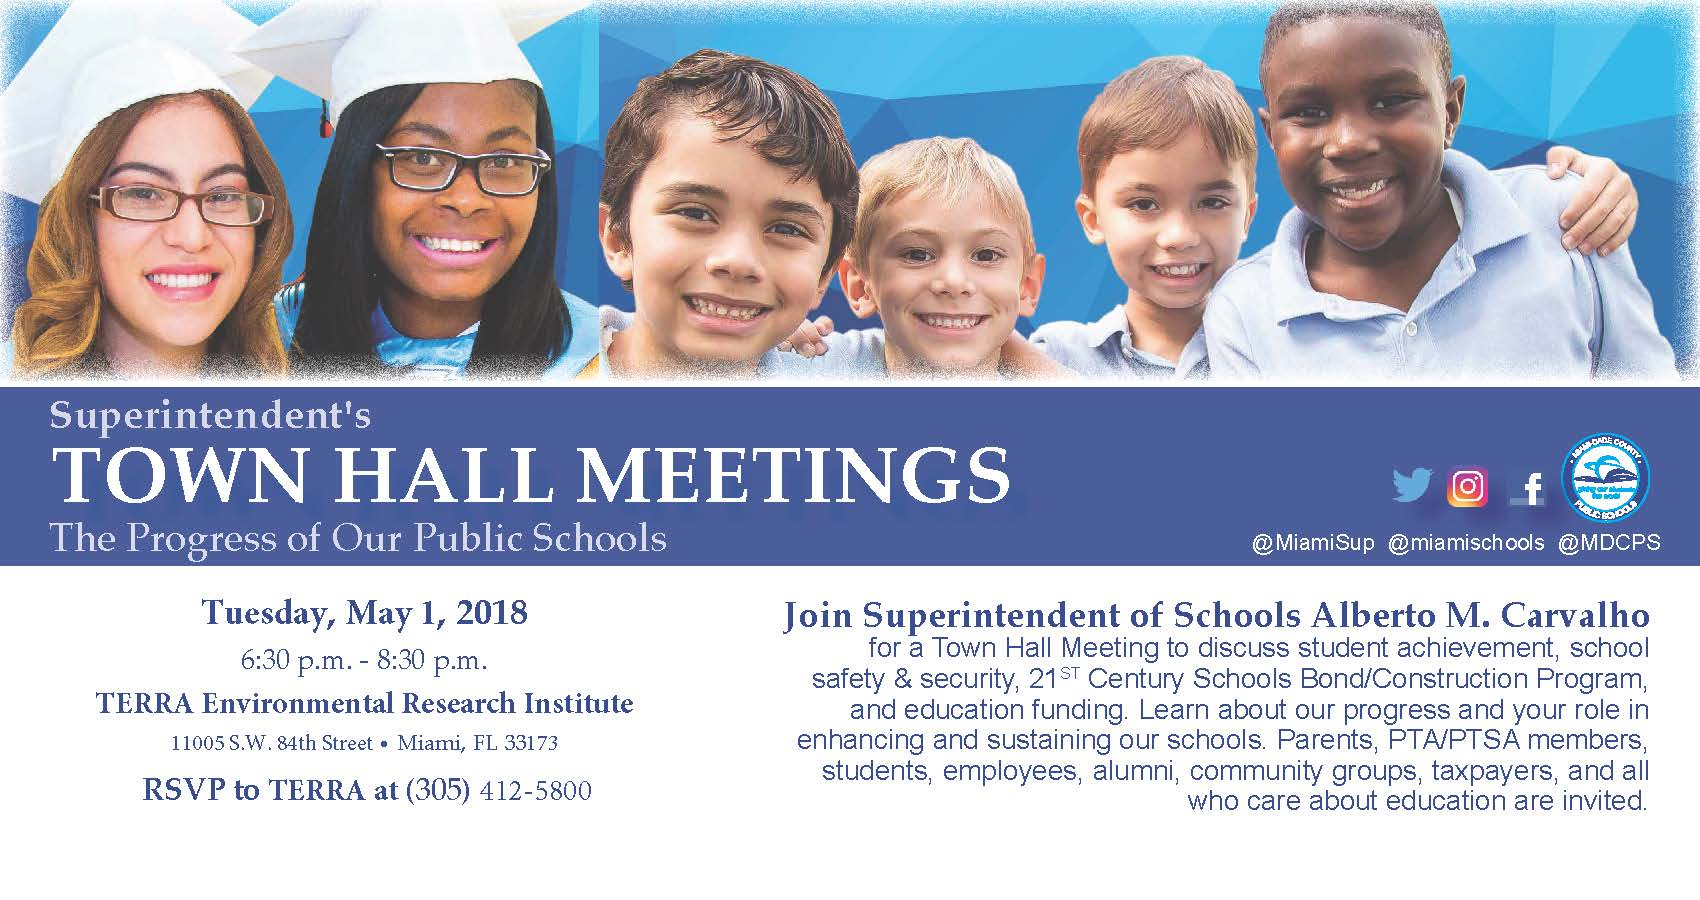 Superintendent's TOWN HALL MEETING: The Progress of Our Public Schools @ TERRA Environmental Research Institute | Miami | Florida | United States